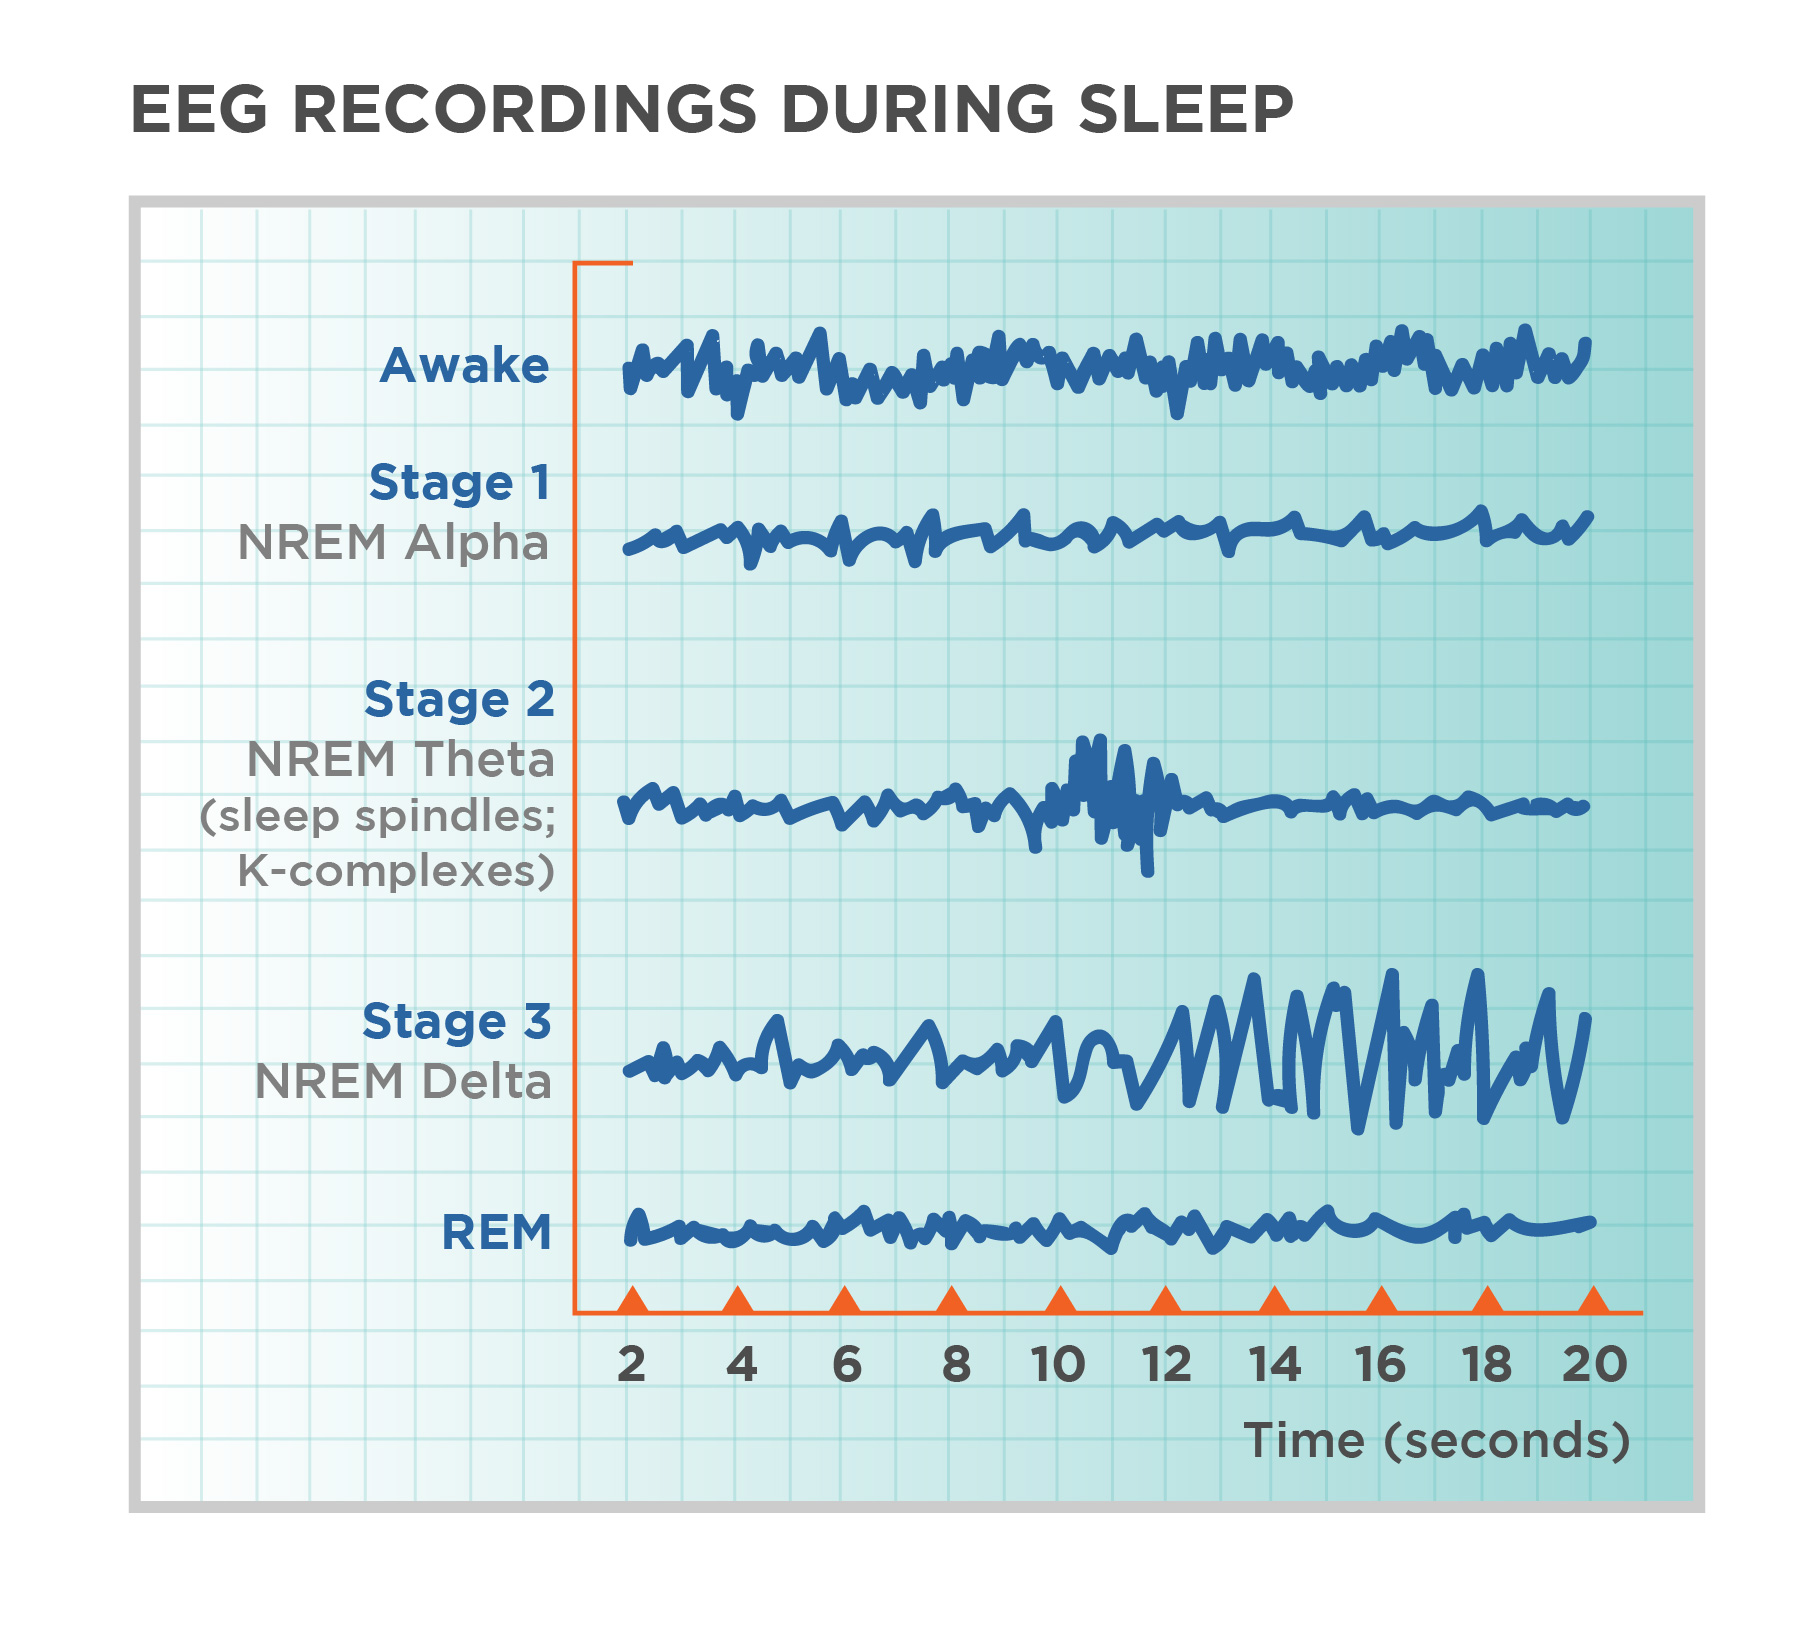 "EEG Recordings During Sleep showing shape of brain waves at four different stages of sleep and, for comparison, brain waves while awake. Each sleep stage has associated wavelengths of varying amplitude and frequency. Relative to the others, ""awake"" has a very close wavelength and a medium amplitude. Stage 1 (NREM Alpha) is characterized by a generally uniform wavelength and a relatively low amplitude which doubles and quickly reverts to normal every 2 seconds. Stage 2 (NREM Theta (sleep spindles; k-complexes)) is comprised of a similar wavelength as stage 1 but lower amplitude. It introduces the K-complex from seconds 10 through 12 which is a short burst of doubled or tripled amplitude and decreased wavelength. Stage 3 (NREM Delta) shows a more uniform wave with gradually increasing amplitude. Finally, REM sleep looks much like stage 2 without the K-complex."